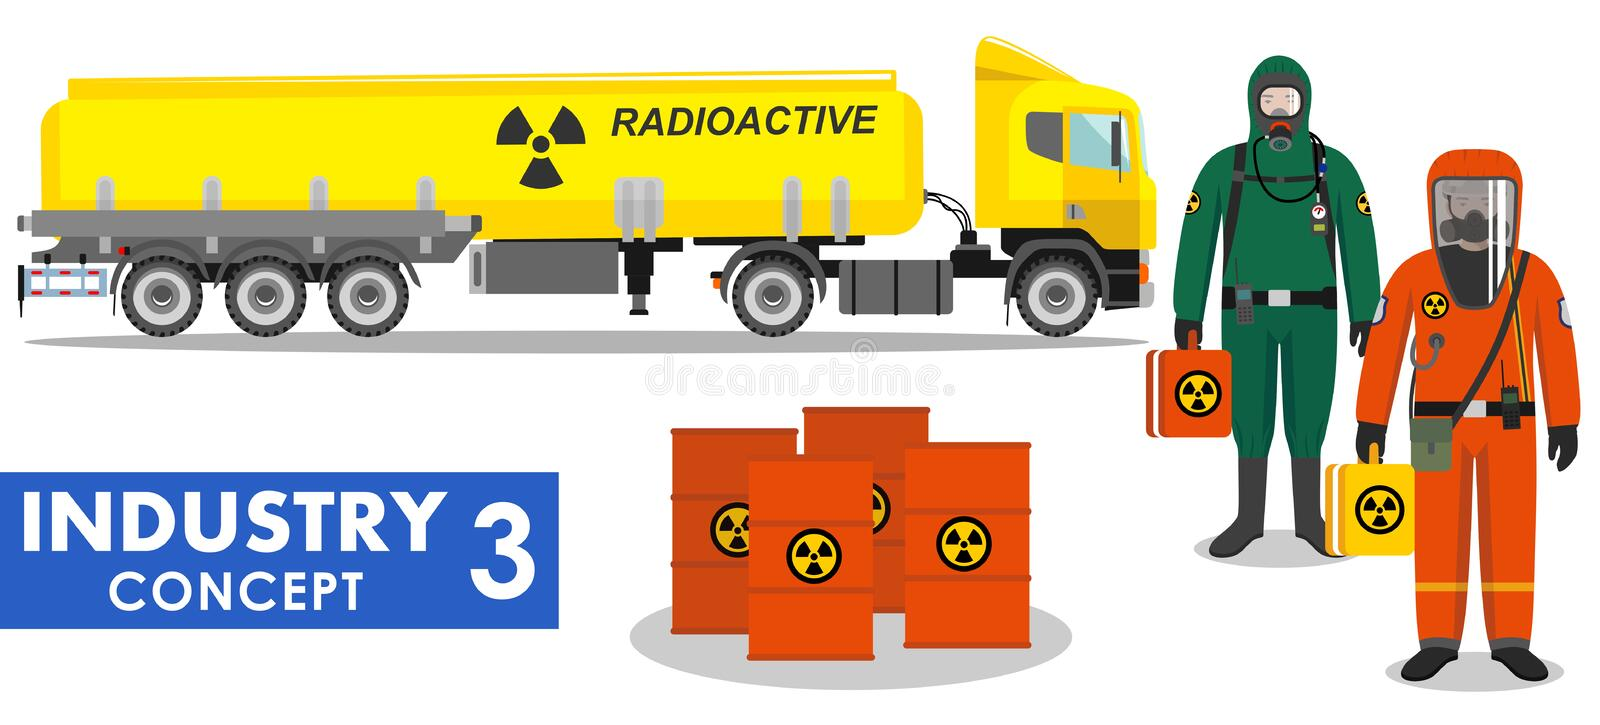 Industry concept. Detailed illustration of cistern truck carrying chemical, radioactive vector illustration